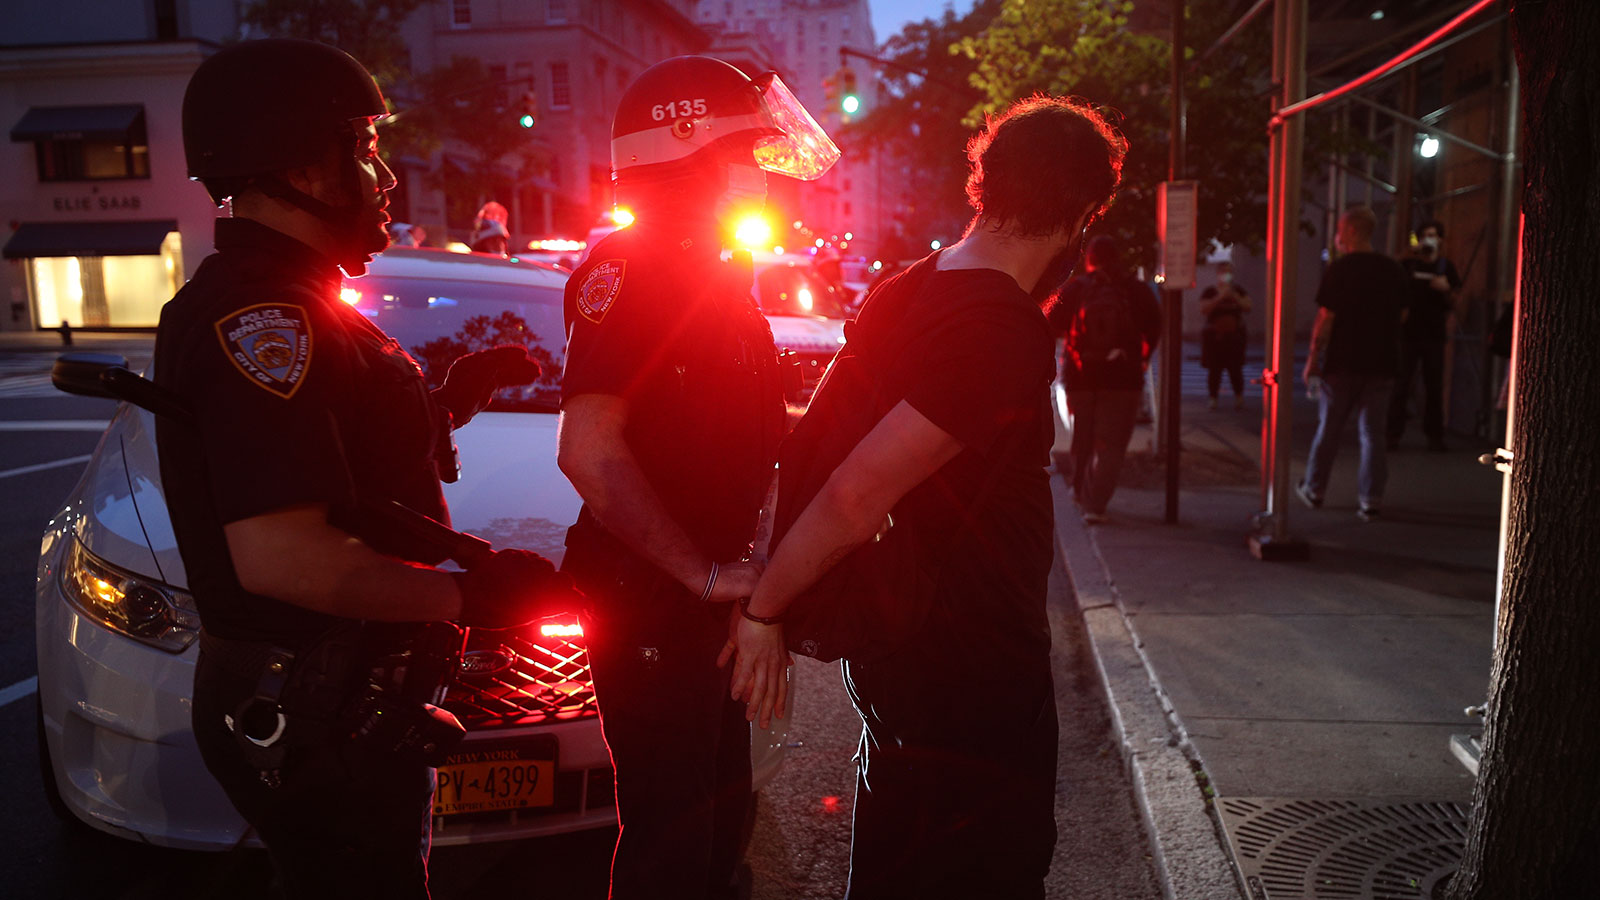 Police officers arrest protesters for breaking the curfew as they continued to protest demanding an end to police brutality and racial injustice over the death of George Floyd in New York City on June 4.